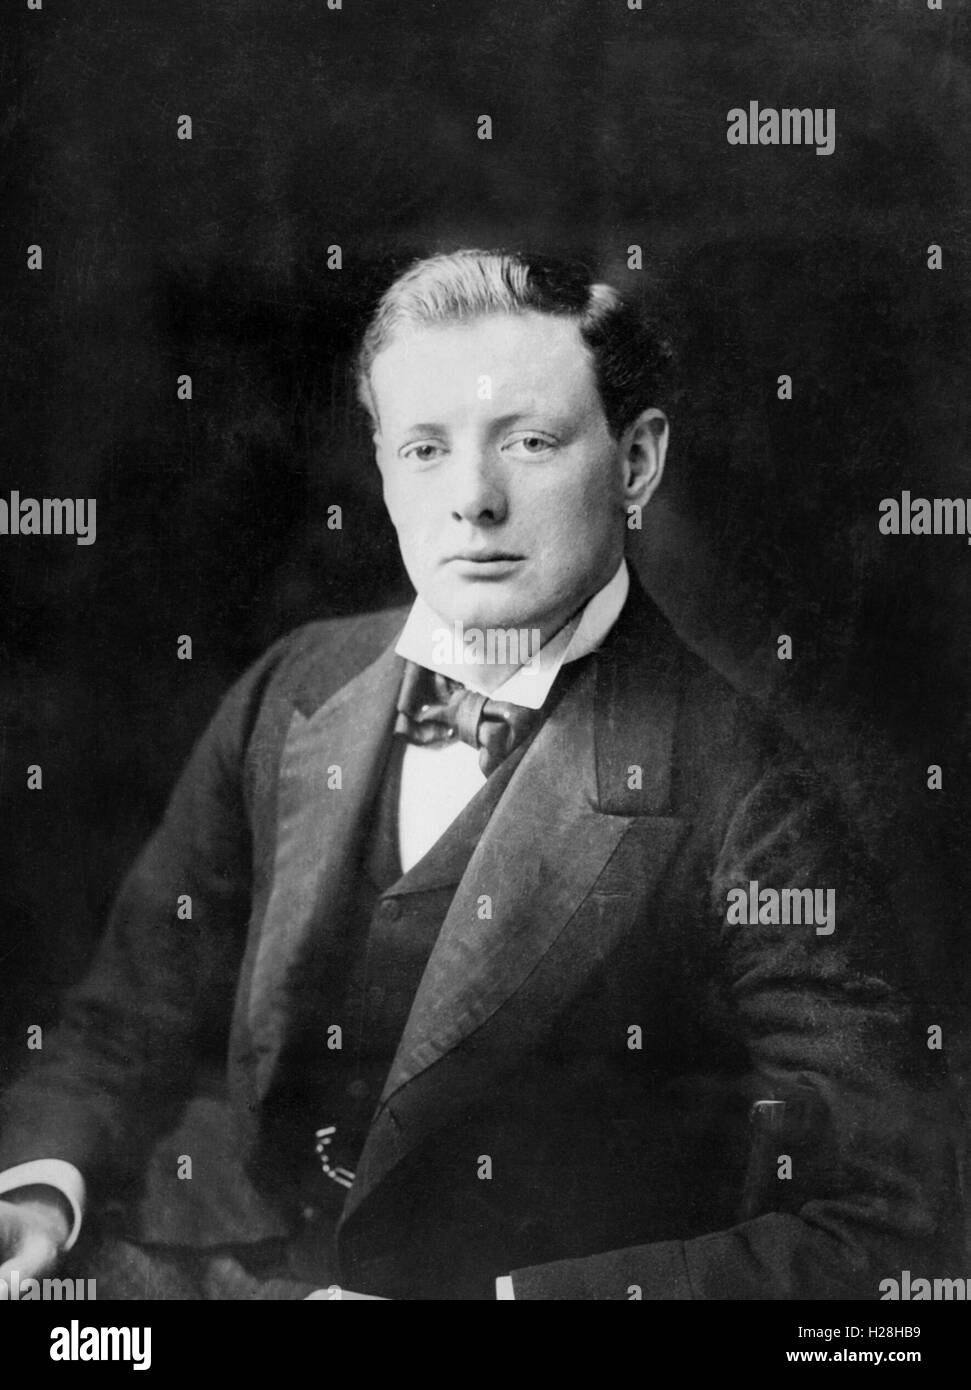 Young 'Winston Churchill' in 1900 - Stock Image